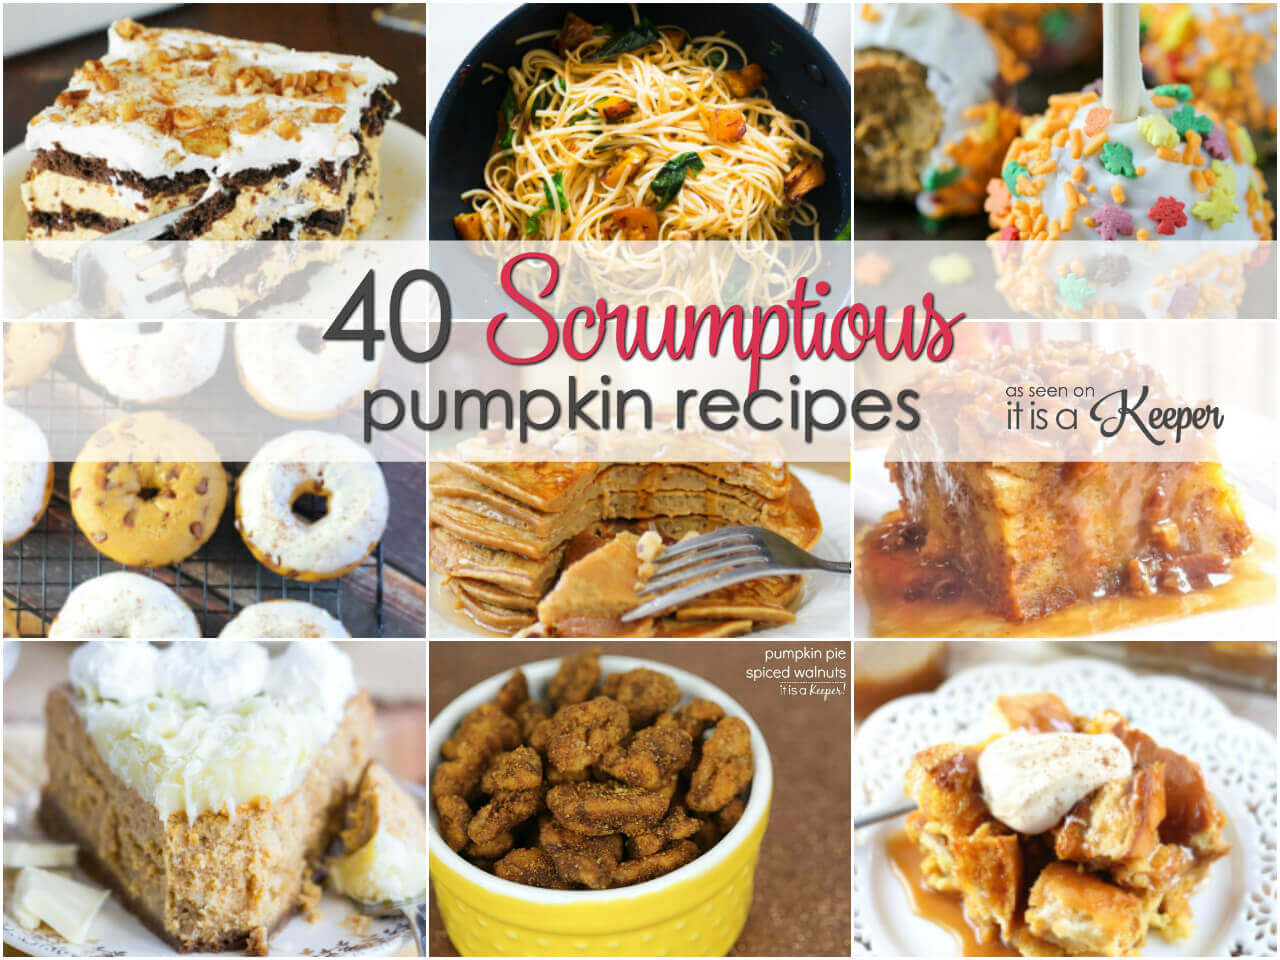 40 Scrumptious Pumpkin Recipes - including main dishes, desserts and more